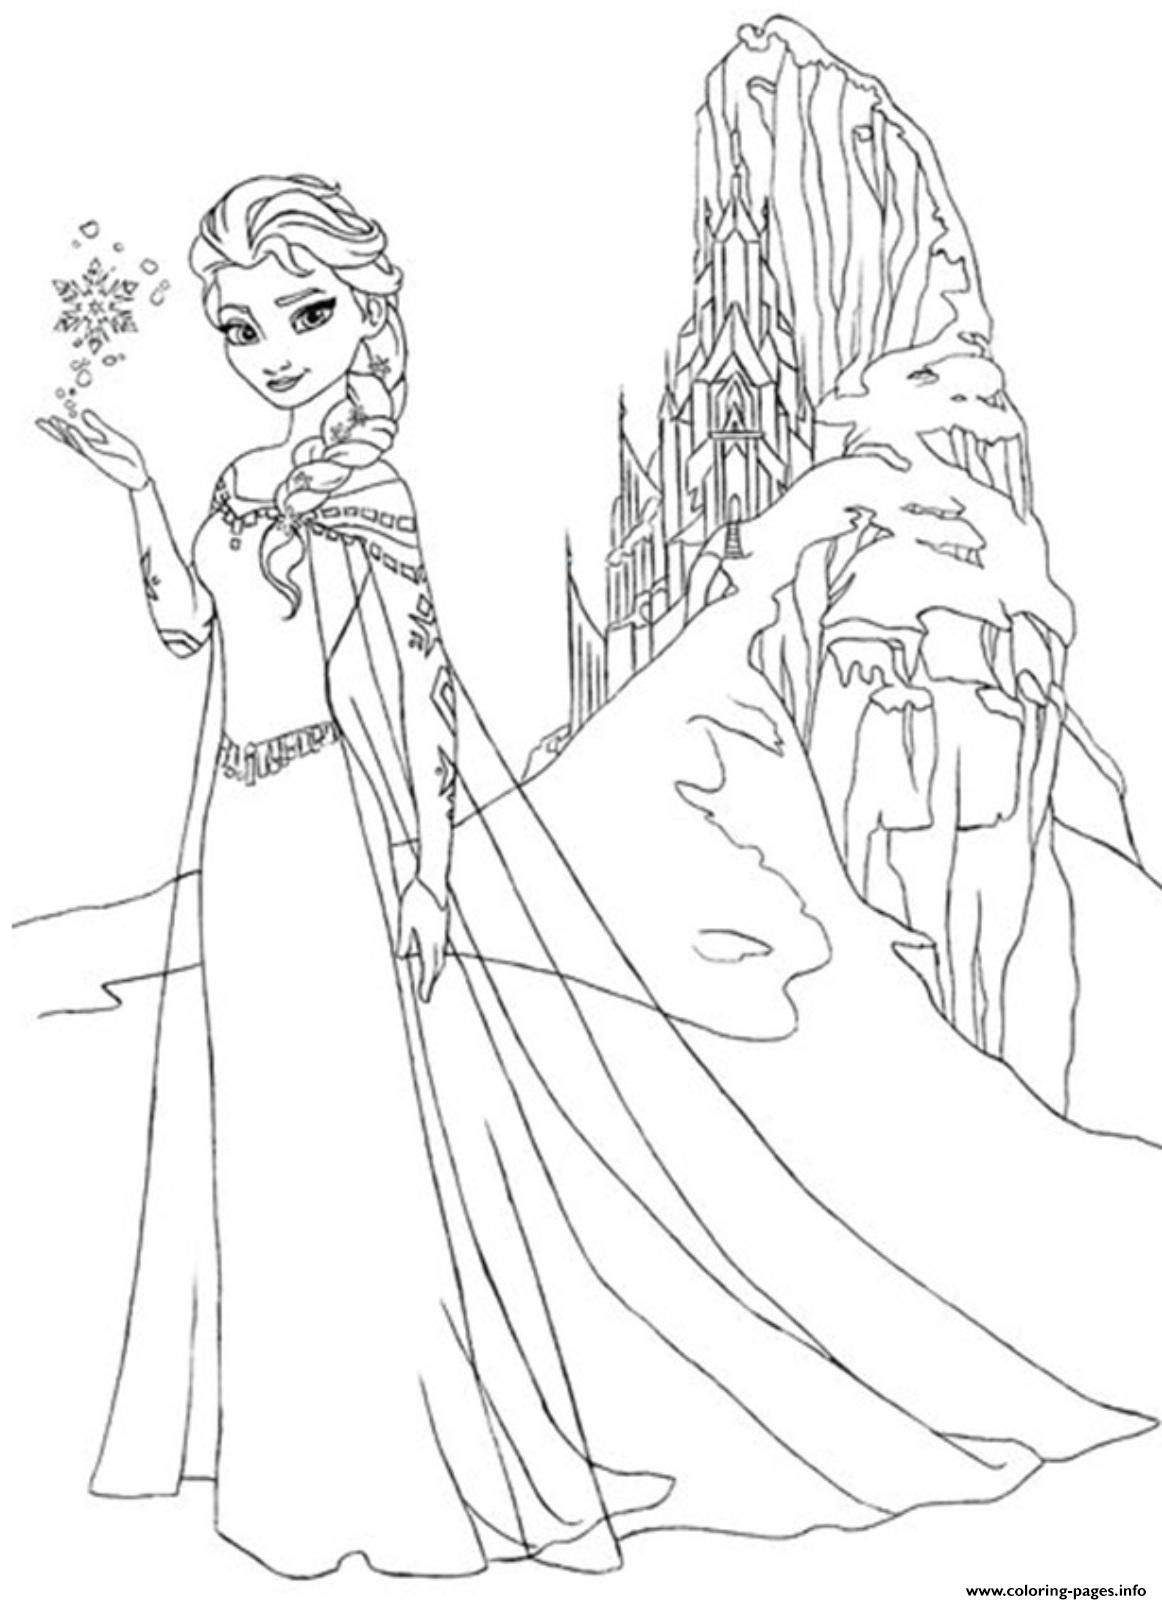 Print Frozen 244f Coloring Pages Kiddos Pinterest Ausmalbilder